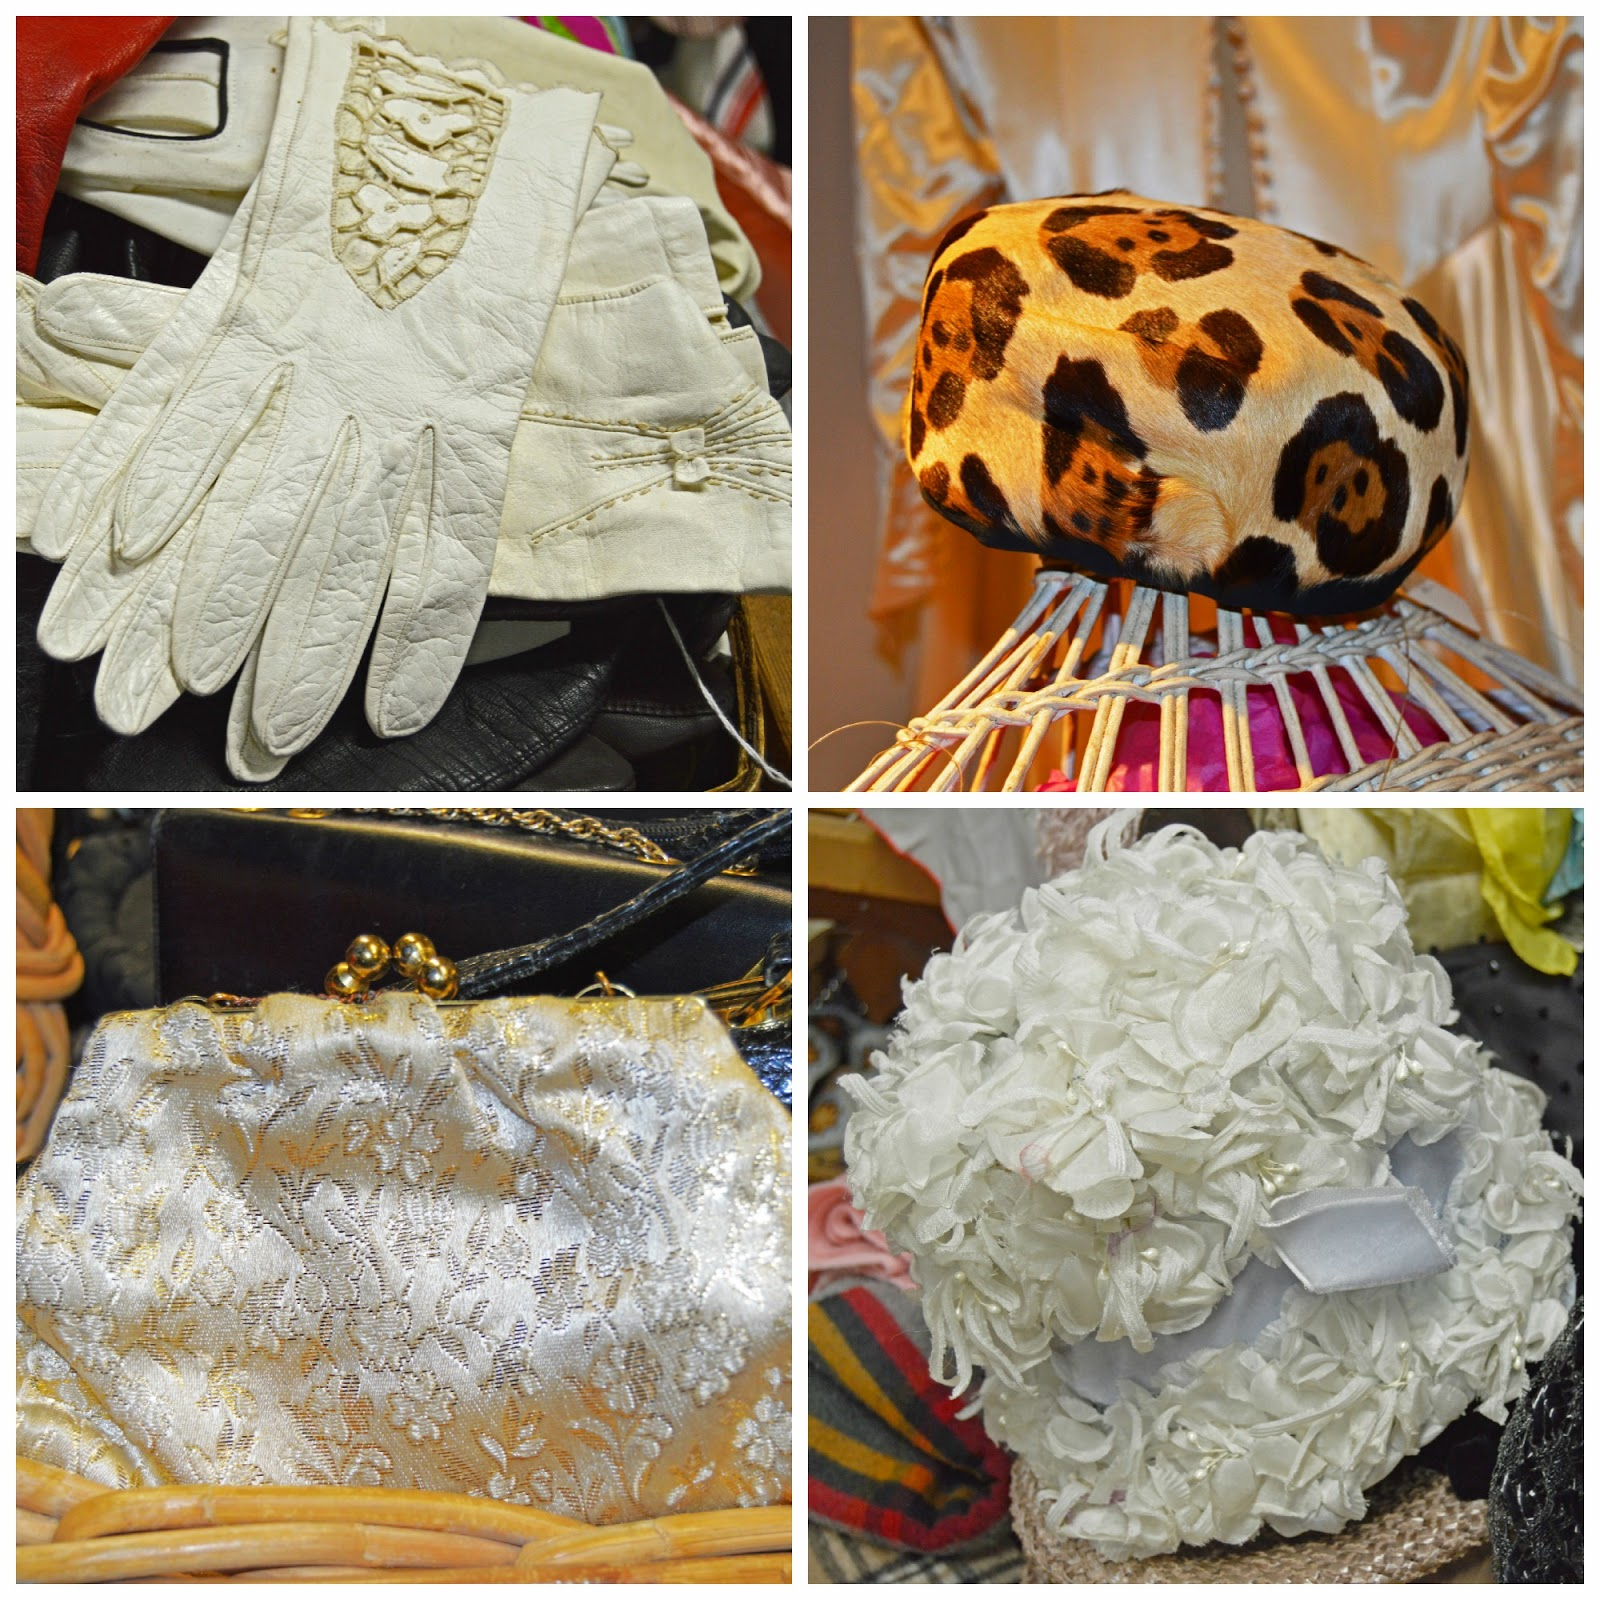 Vintage Accessories-Gloves, Hats, Clutch